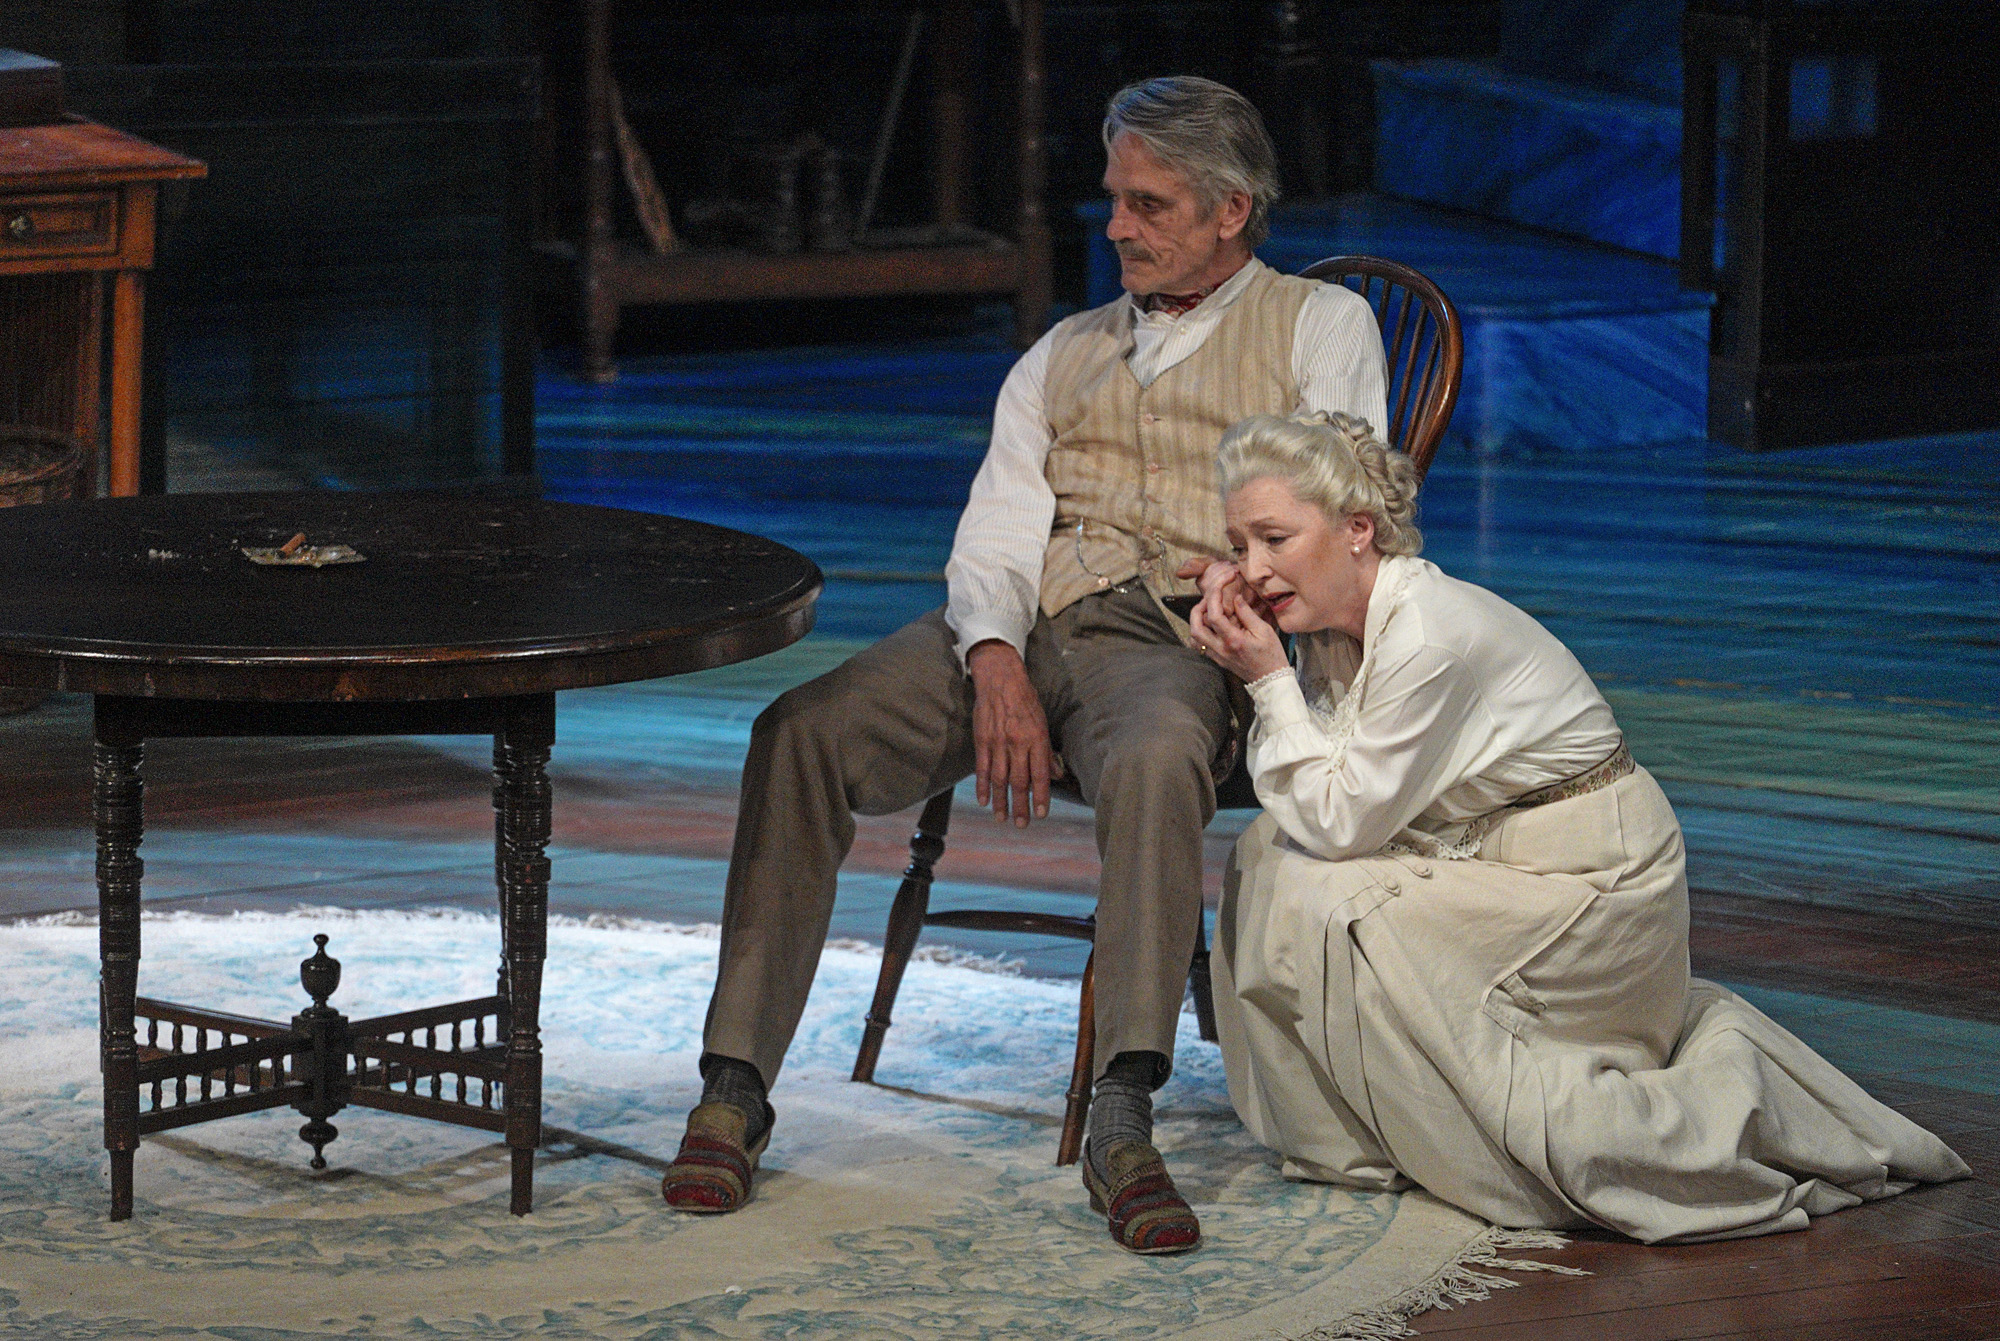 Jeremy Irons (James Tyrone), Lesley Manville (Mary Tyrone). PHOTO CREDIT: Lawrence K. Ho